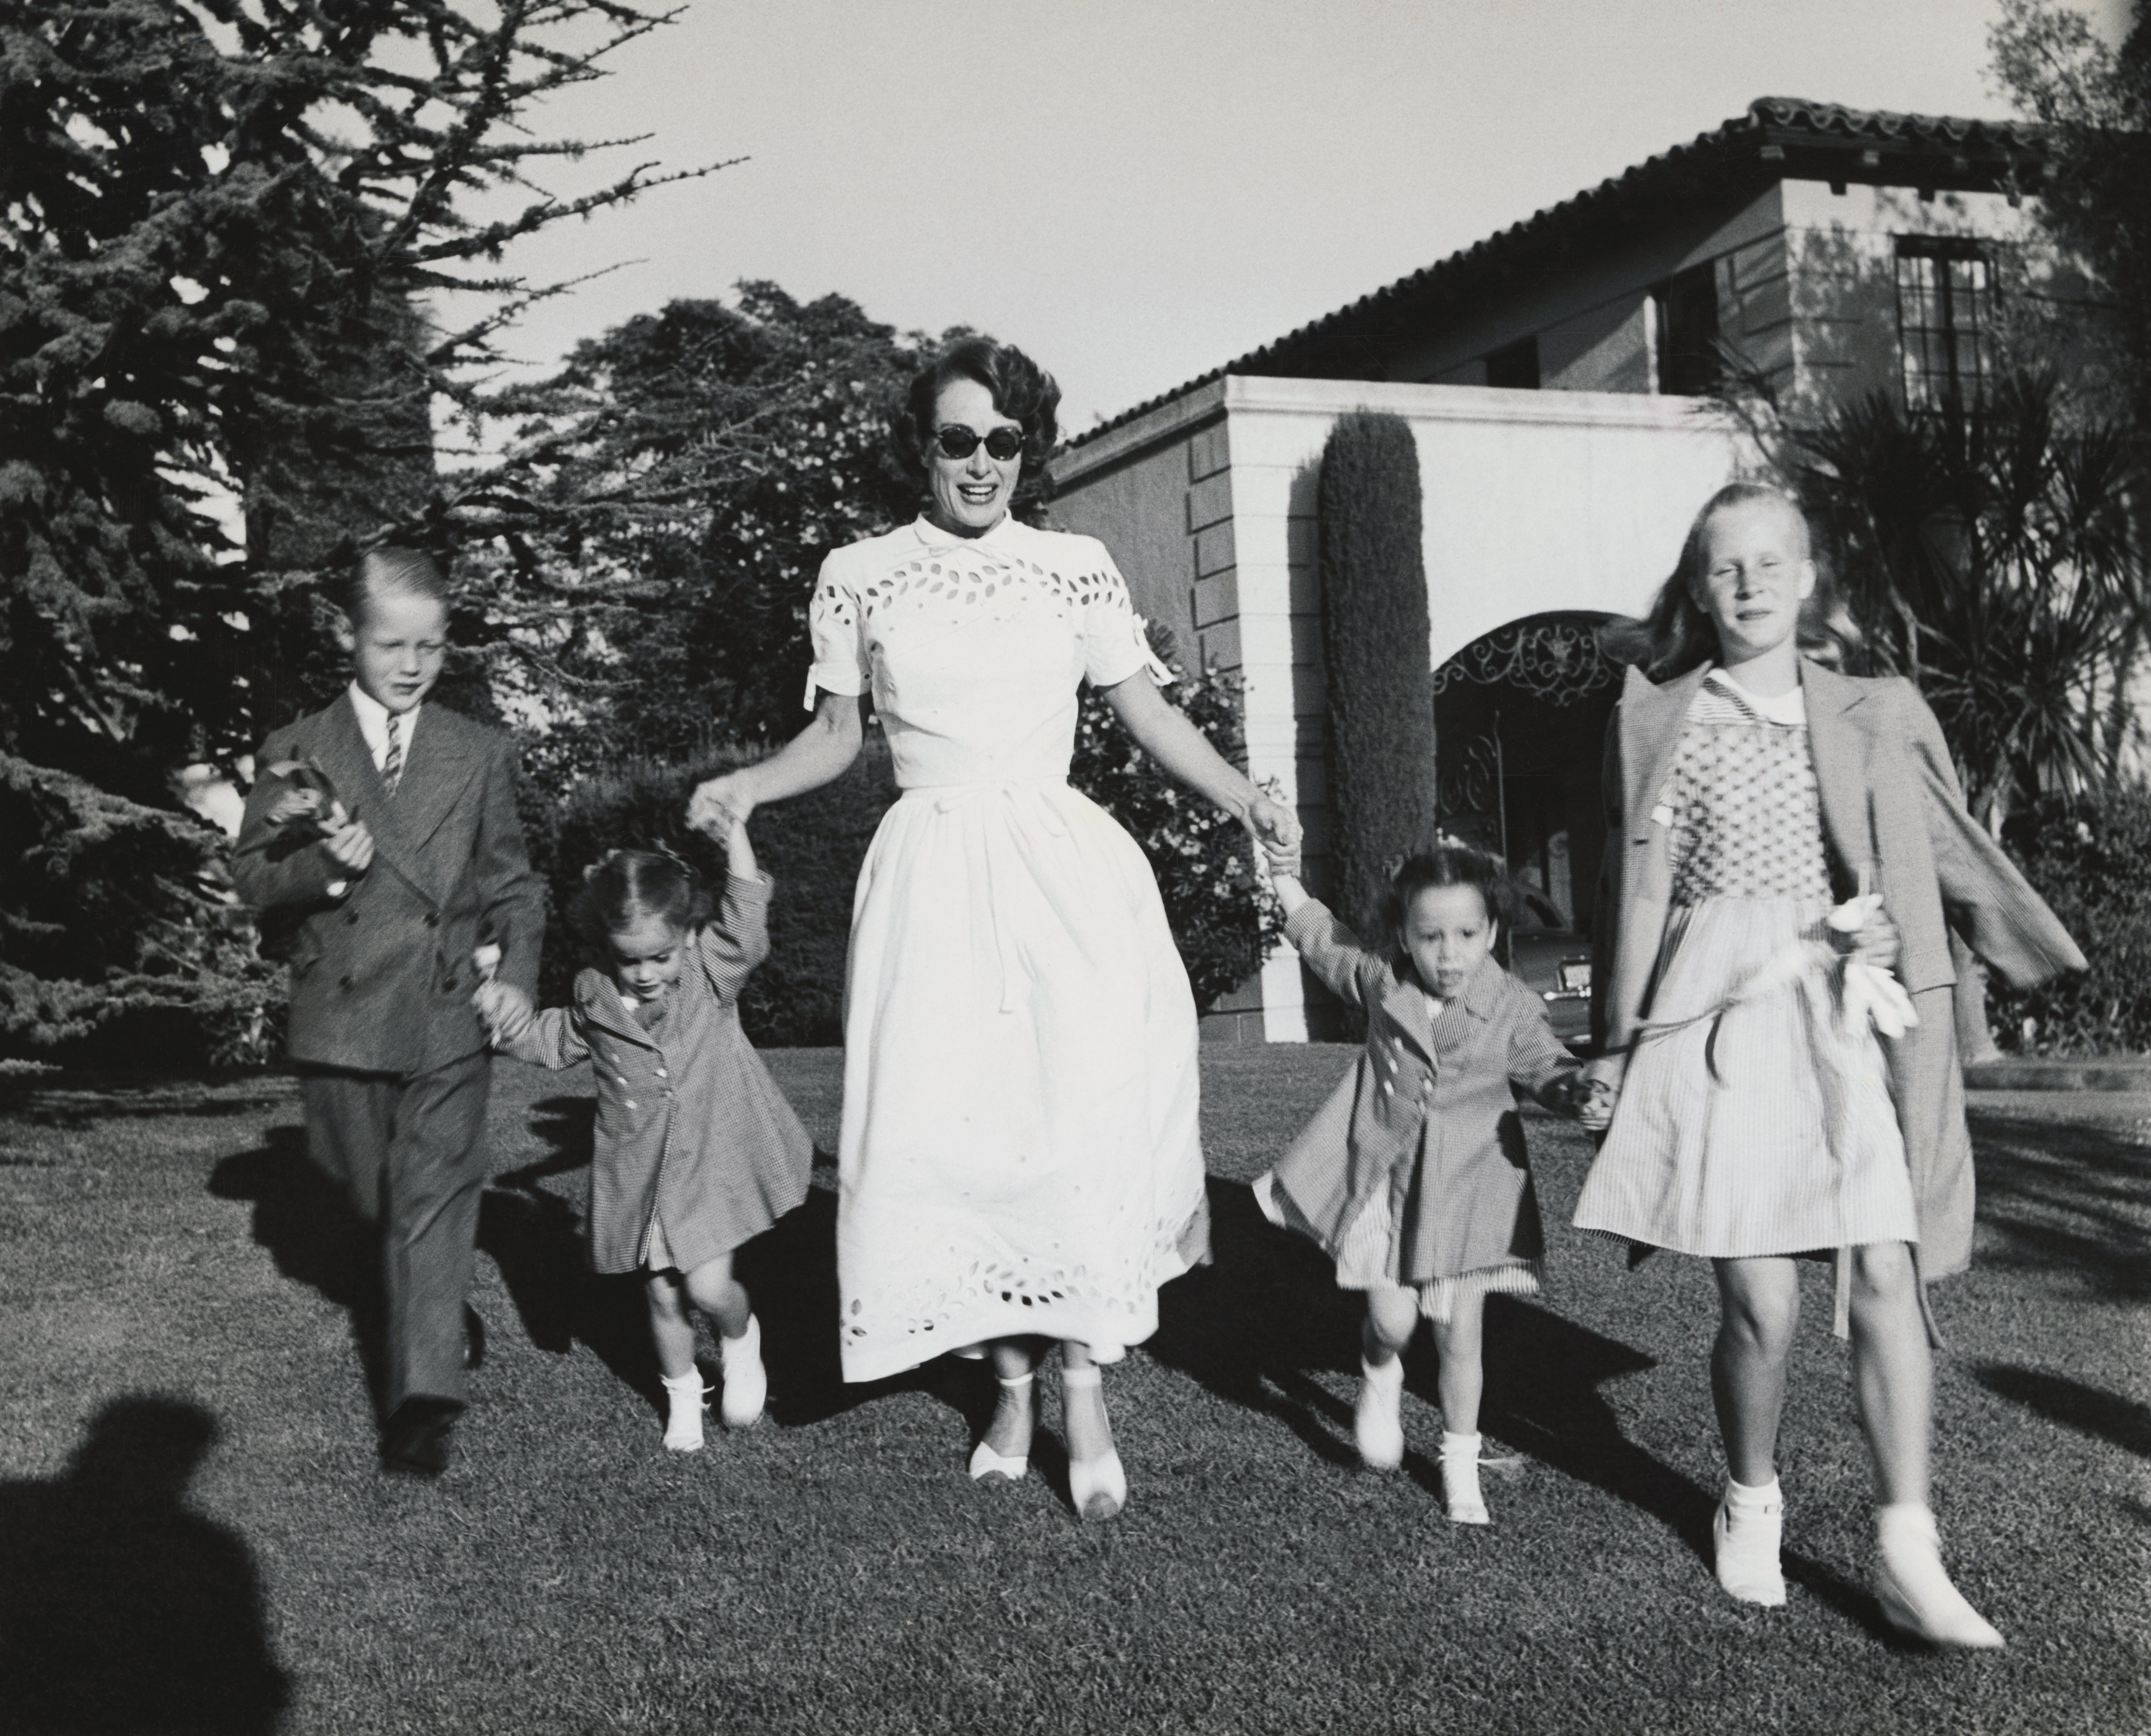 Joan Crawford and four children, Christopher, Cathy, Cynthia, and Christina romp on lawn following party given by Ann Rutherford for daughter Gloria's 5th birthday.   Source: Getty Images